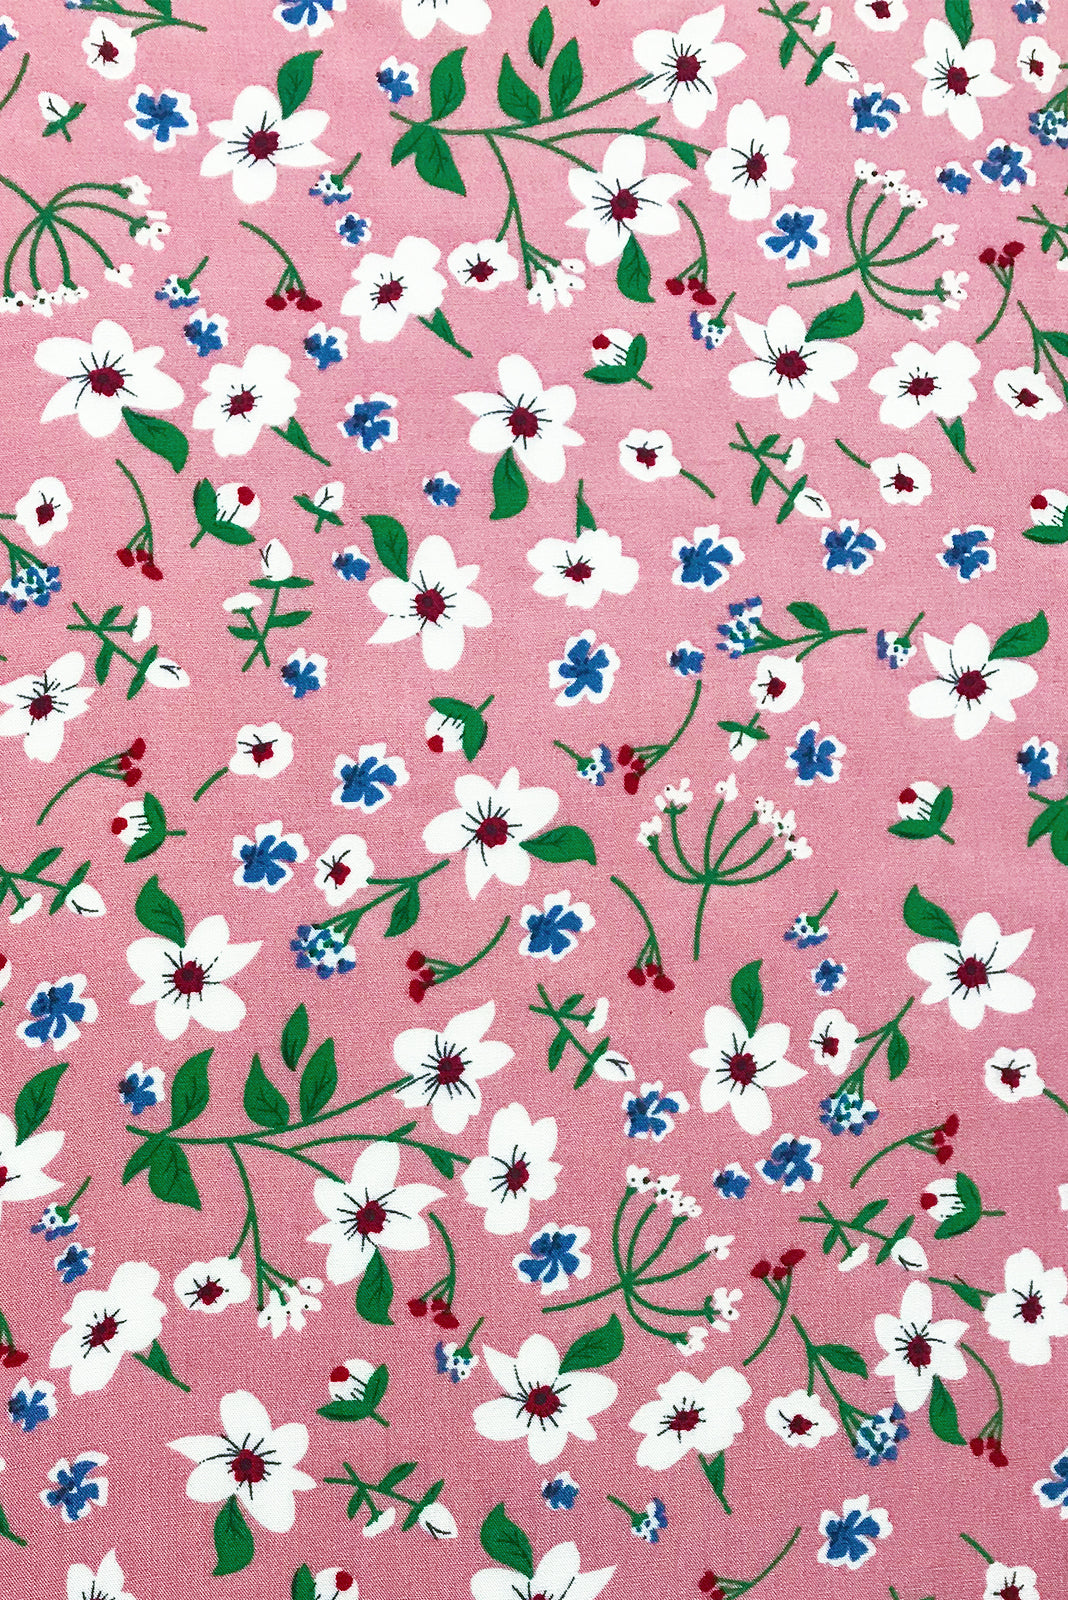 Fabric Swatch of Henrietta Antique Rose Dress features woven 100% rayon in Gorgeous dusky petal pink base with ditzy floral print of white and blue.